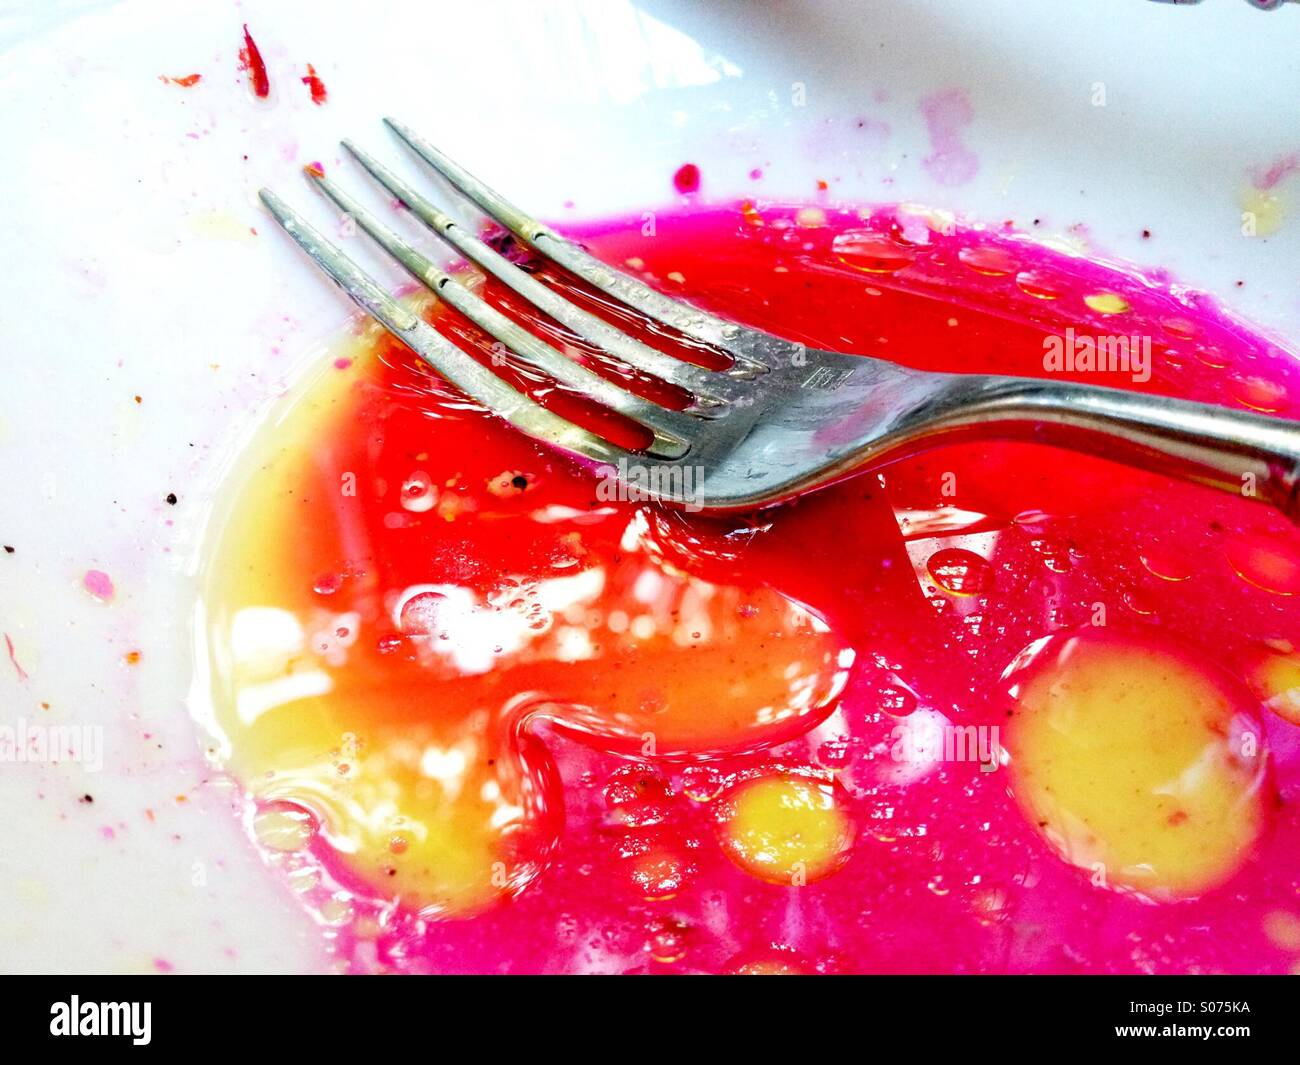 Fork with juice from beet salad - Stock Image